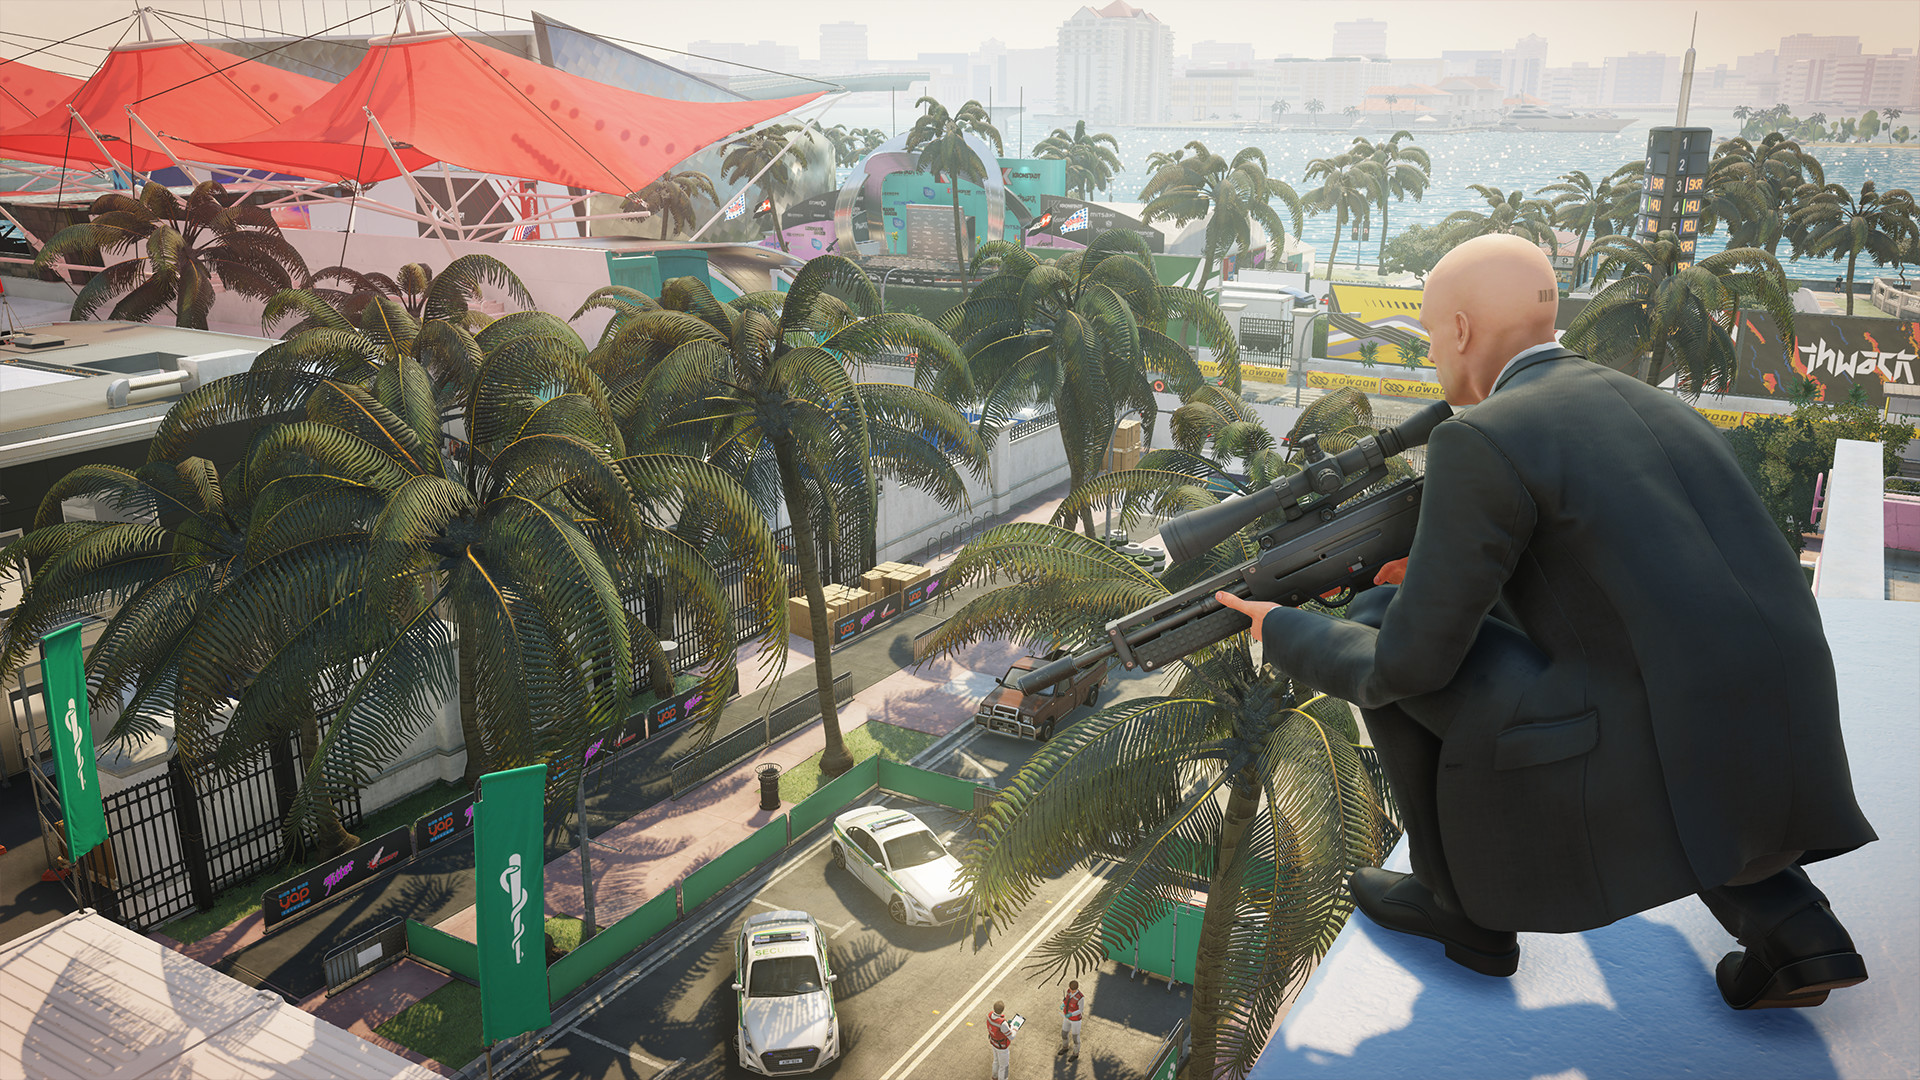 Check out Hitman 2's dazzling Miami level in this new trailer